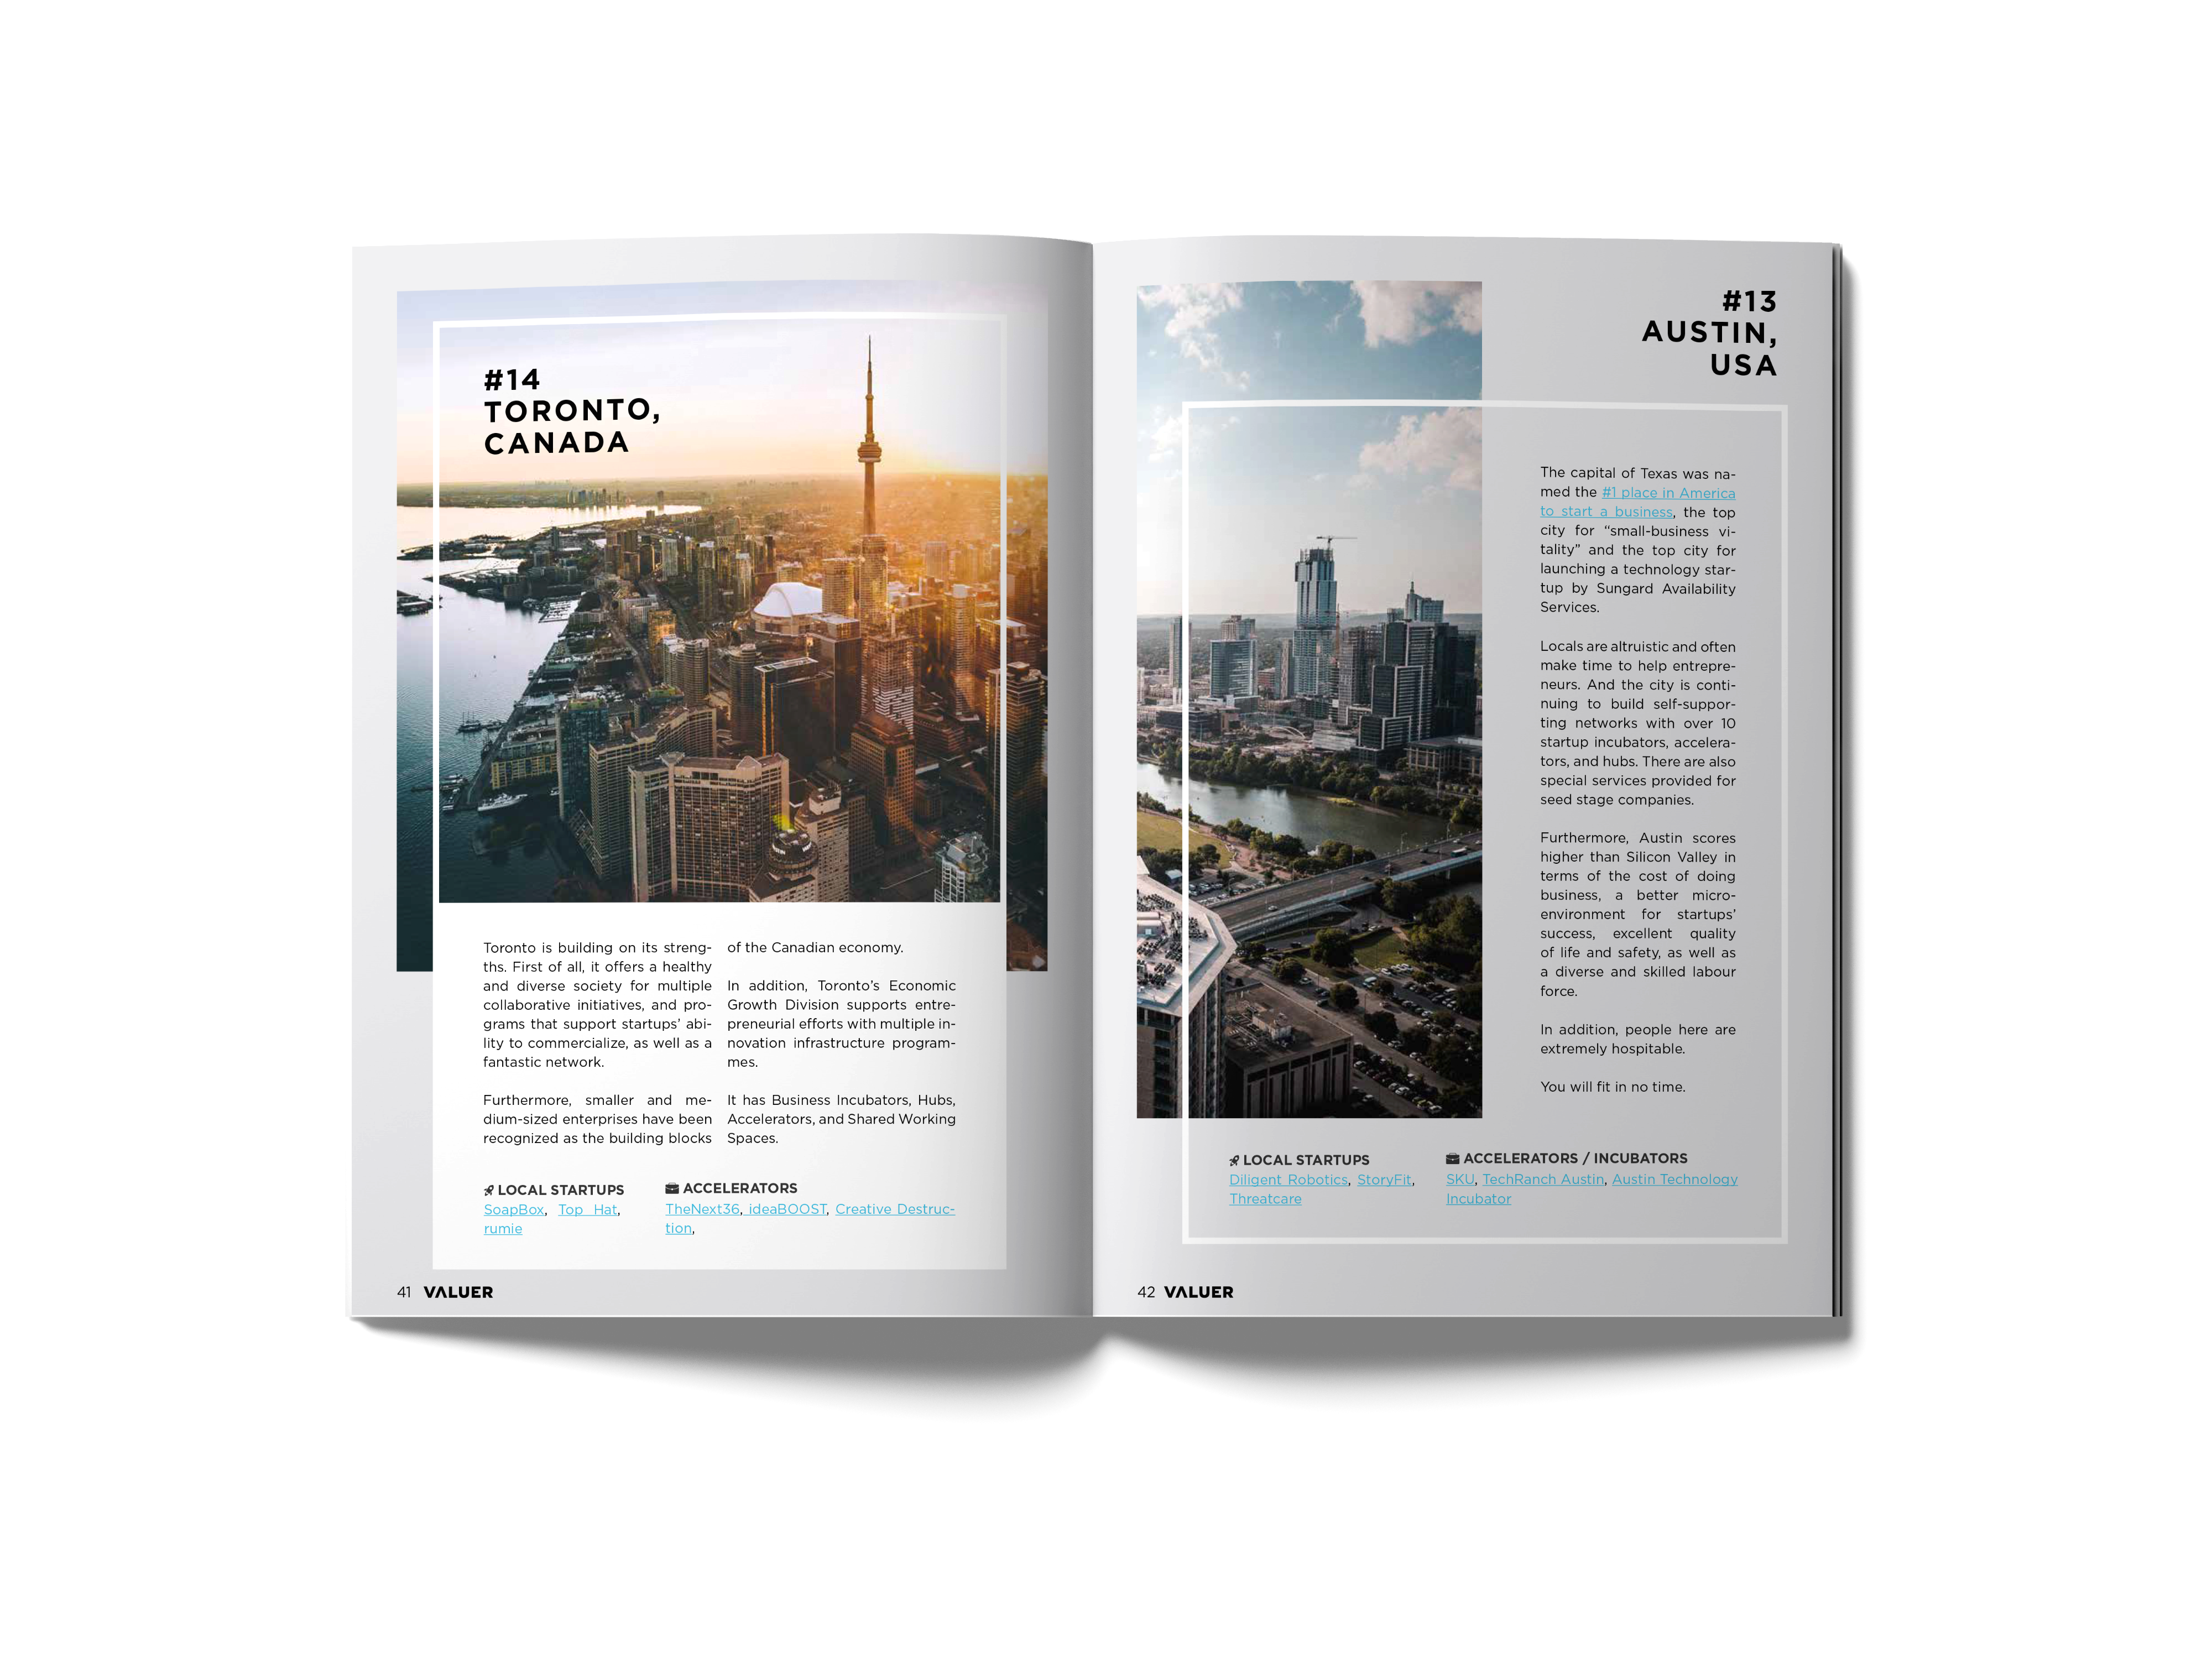 Best 50 startup cities in 2019 page 41-42